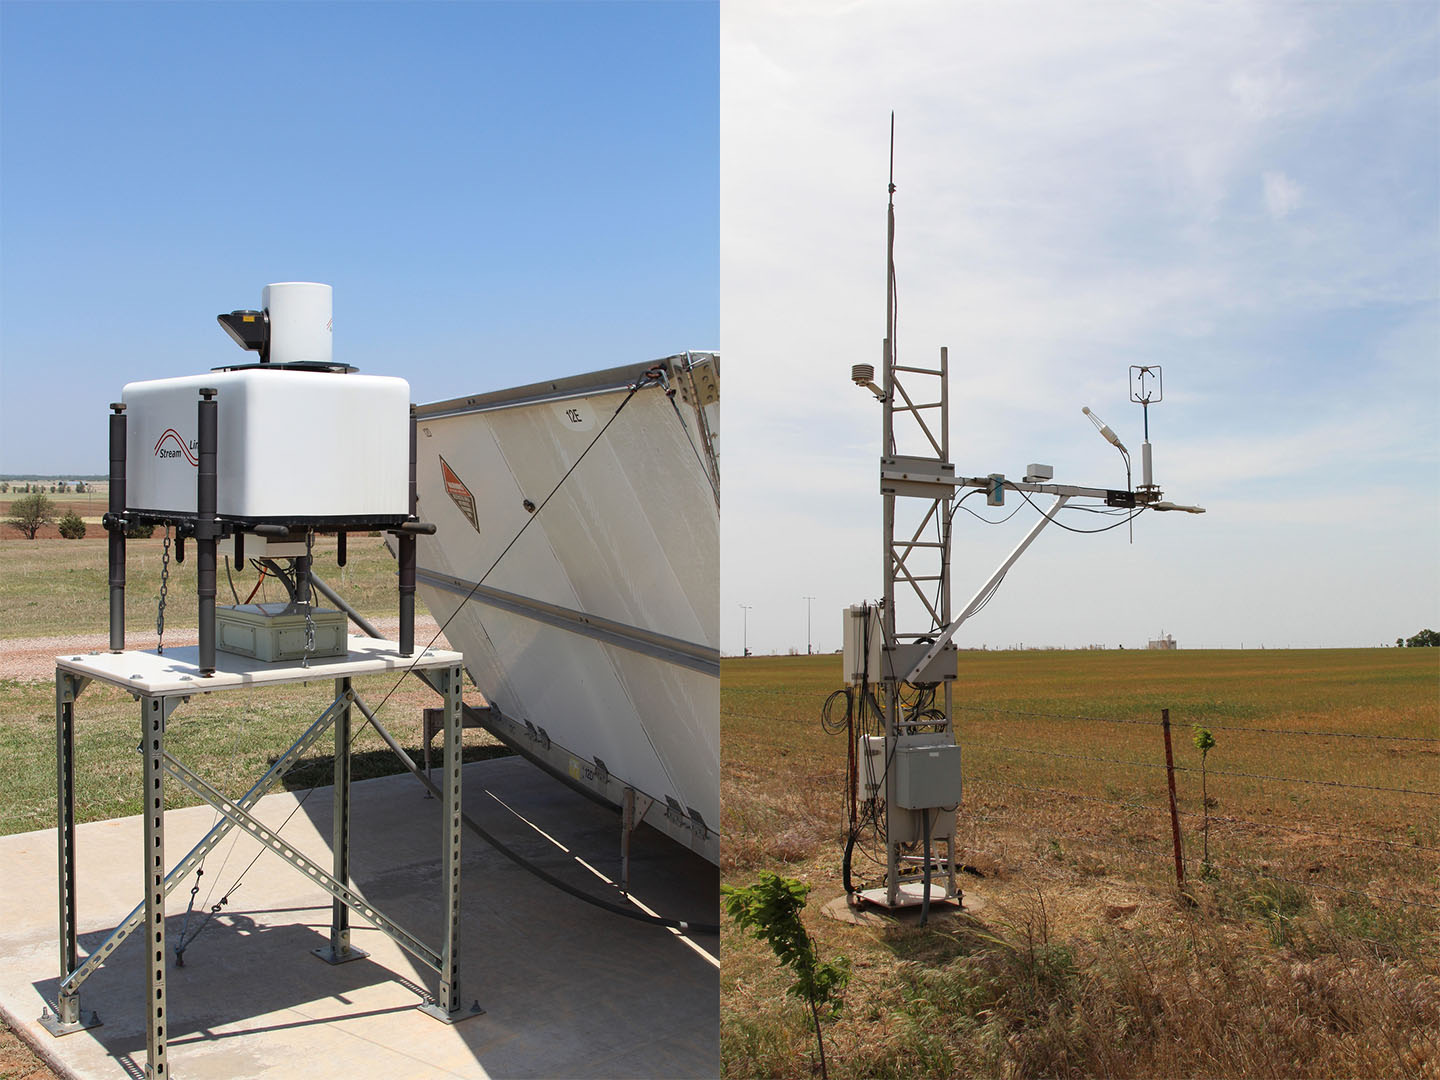 Two of the most important ARM instruments for Yunyan Zhang's research are the Doppler Lidar (left) and the eddy correlation (ECOR) flux measurement system (right). The first enables 3D mapping of turbulent flows in the atmospheric boundary layer; the second measures surface turbulence fluxes.